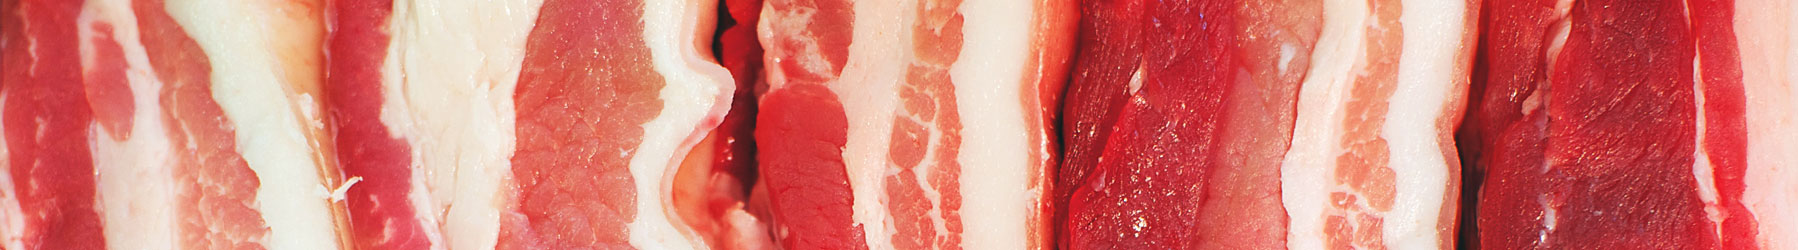 bacon-from-the-butchery-at-denstone-hall-staffordshire